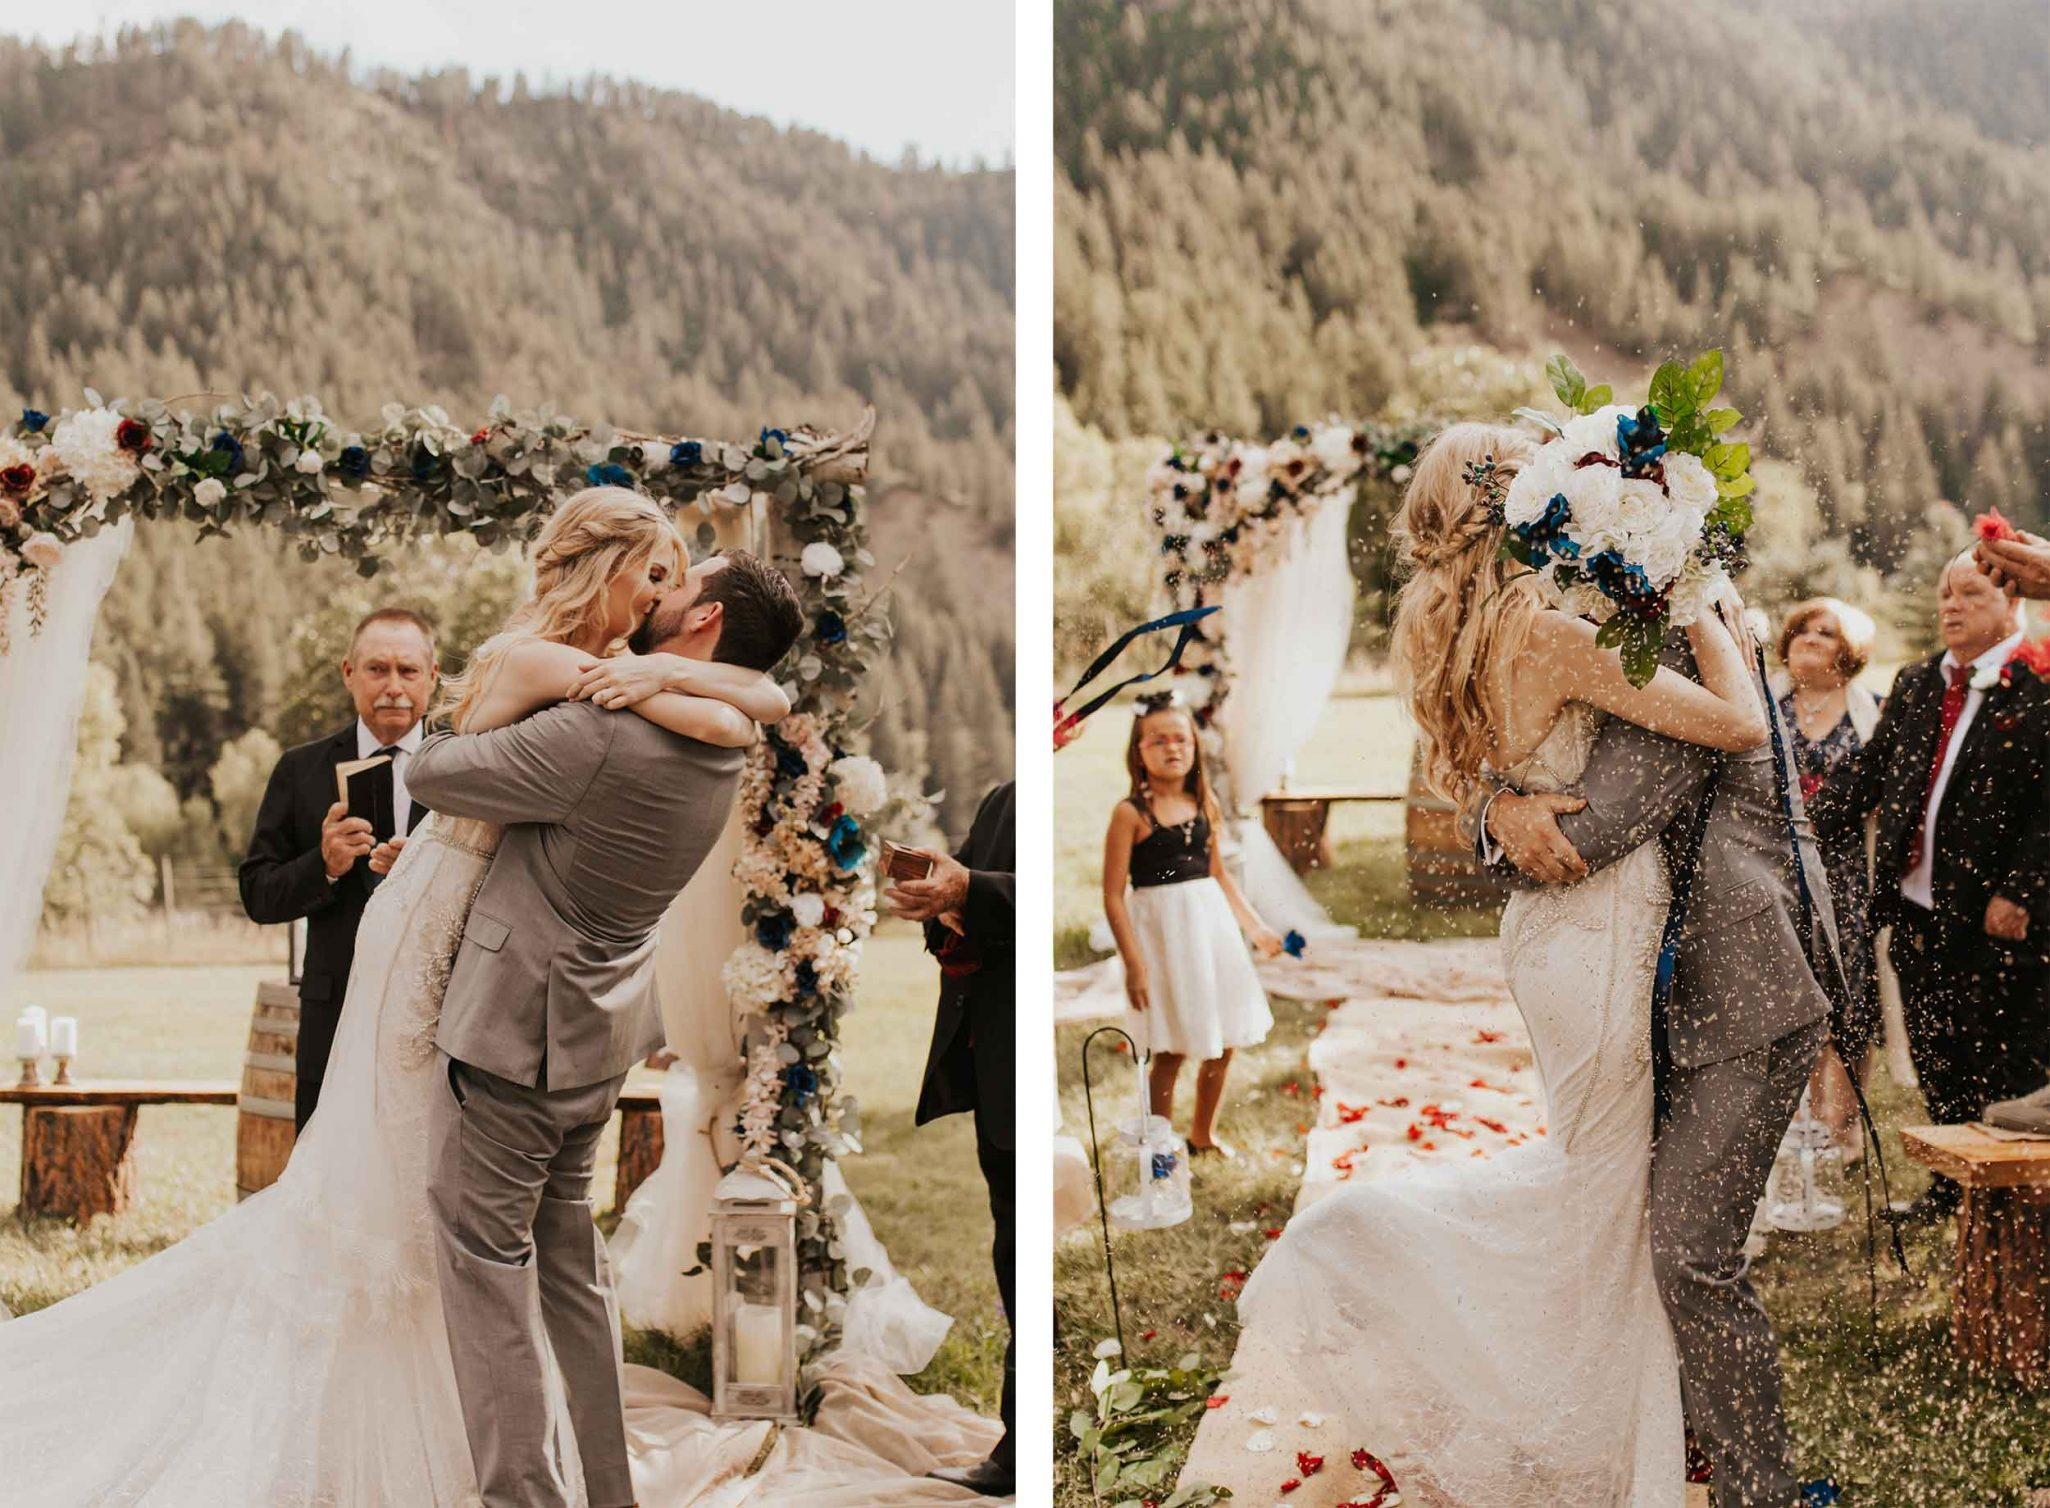 Newly married in Pagosa Springs, Colorado